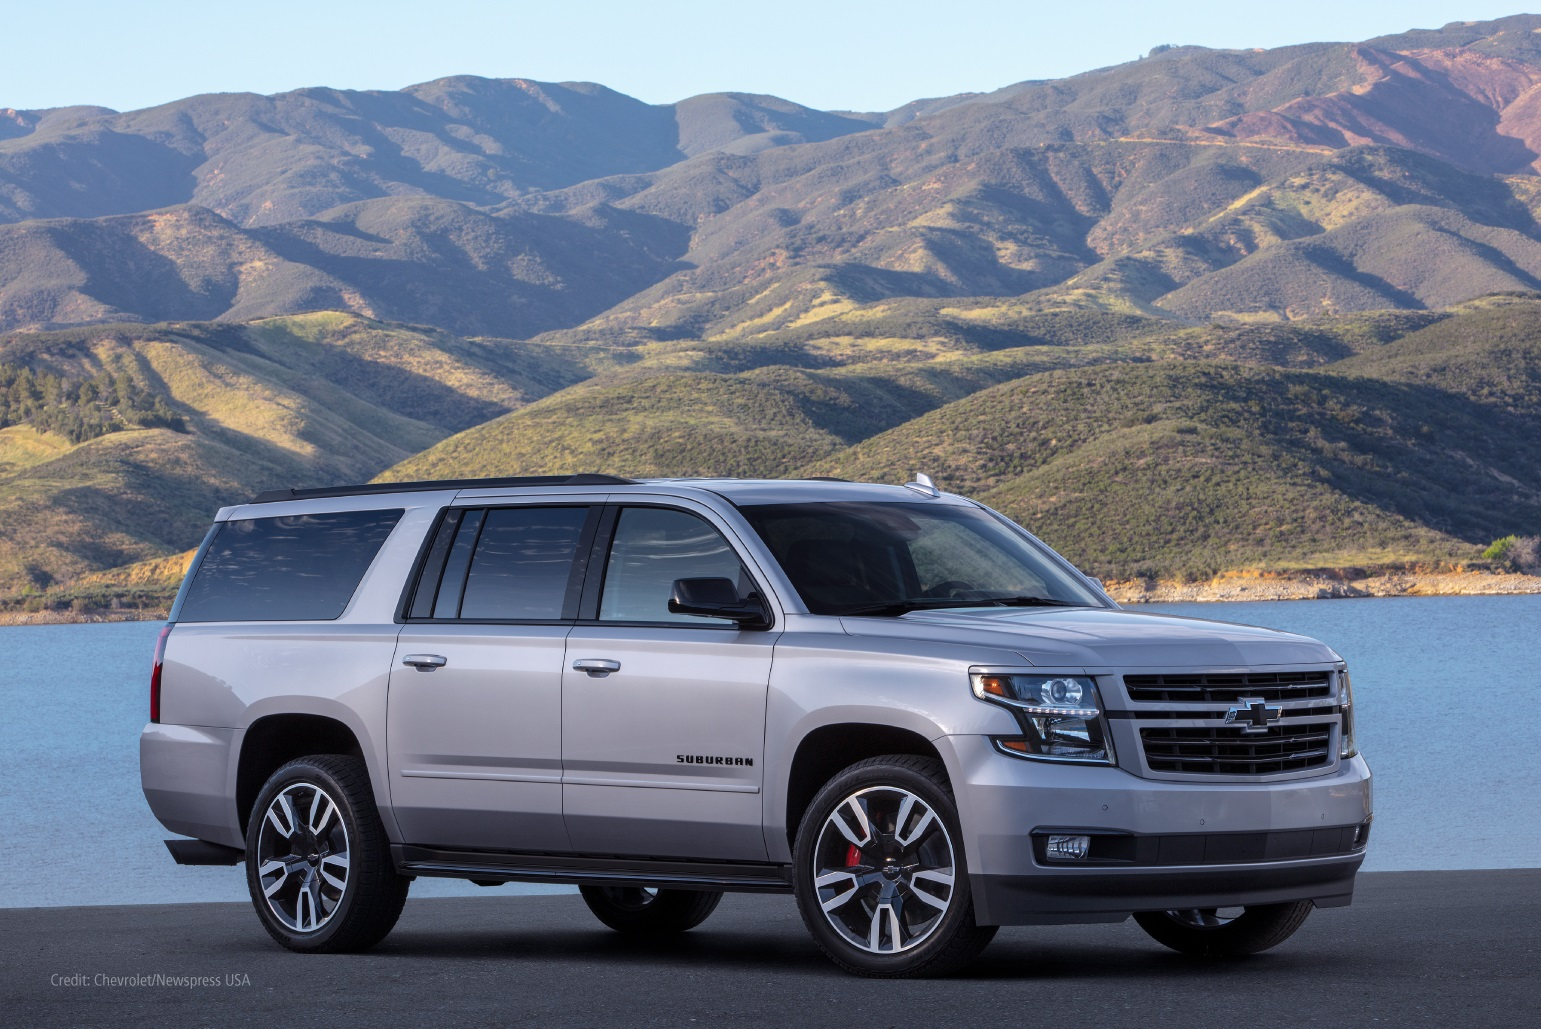 Chevrolet Suburban in front of mountains